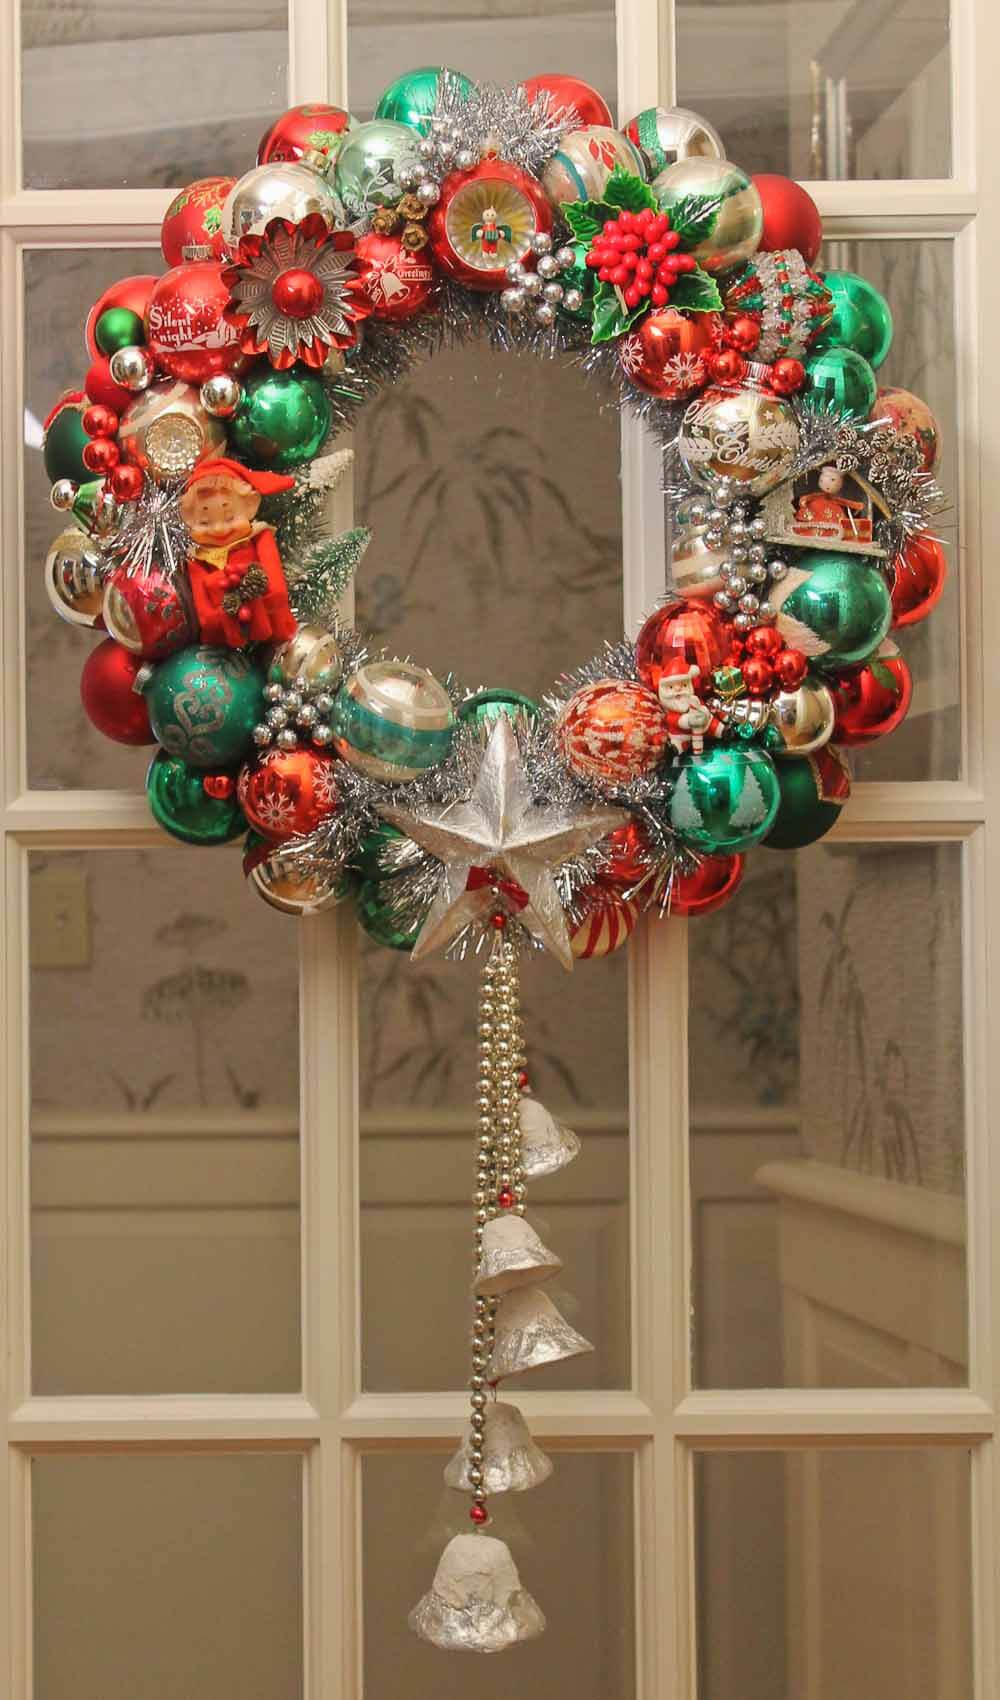 100+ photos of DIY Christmas ornament wreaths - Upload ...